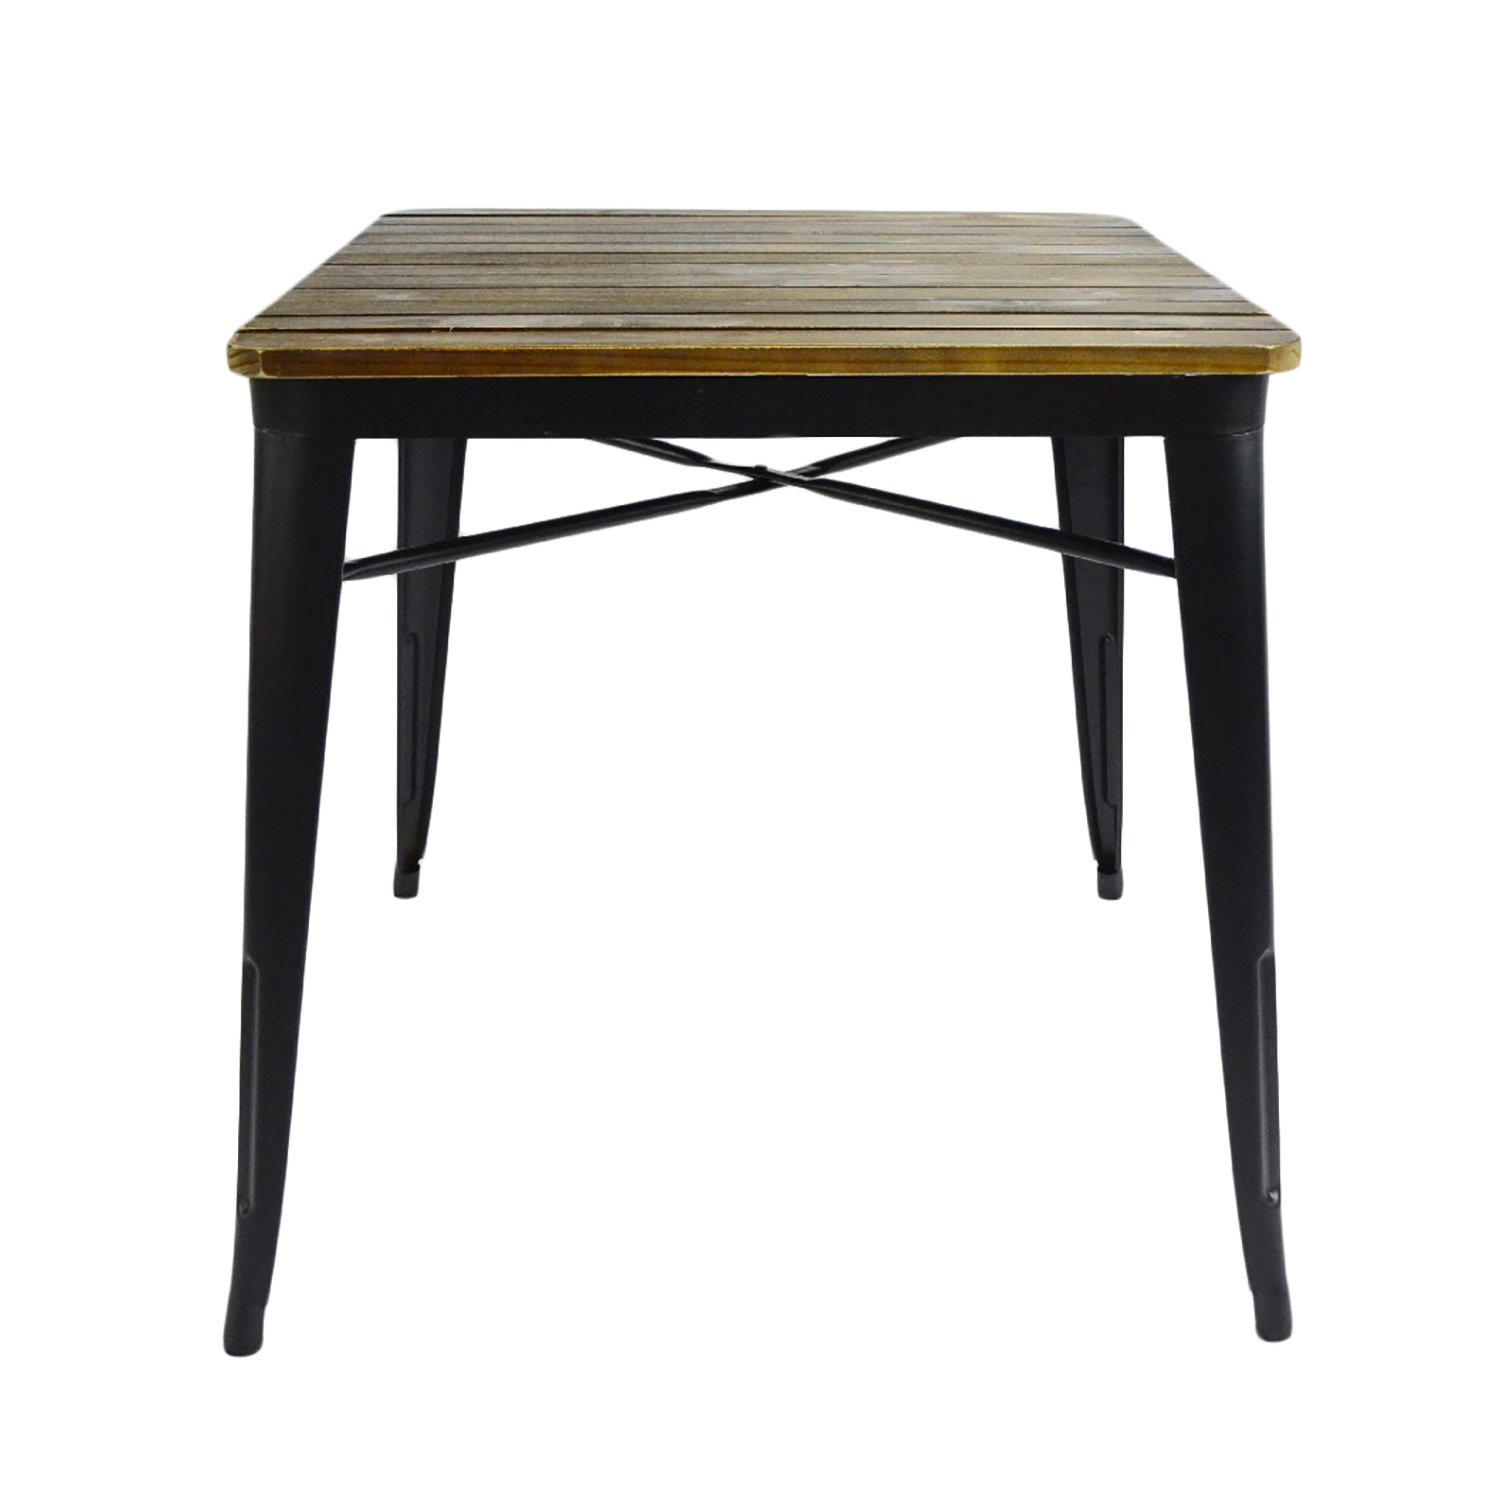 VILAVITA Square Pine Wood Dining Table, Wooden Dining Furniture, 27.56 by 27.56-inch, Retro Finish - 27.56*27.56 inch wood top and 29.53 inch height square dining table Casual table with pine wood top and wrought iron frame offers reliable stability Vintage industrial style, simple but stylish leisure coffee table - kitchen-dining-room-furniture, kitchen-dining-room, kitchen-dining-room-tables - 611d5k%2BivoL -